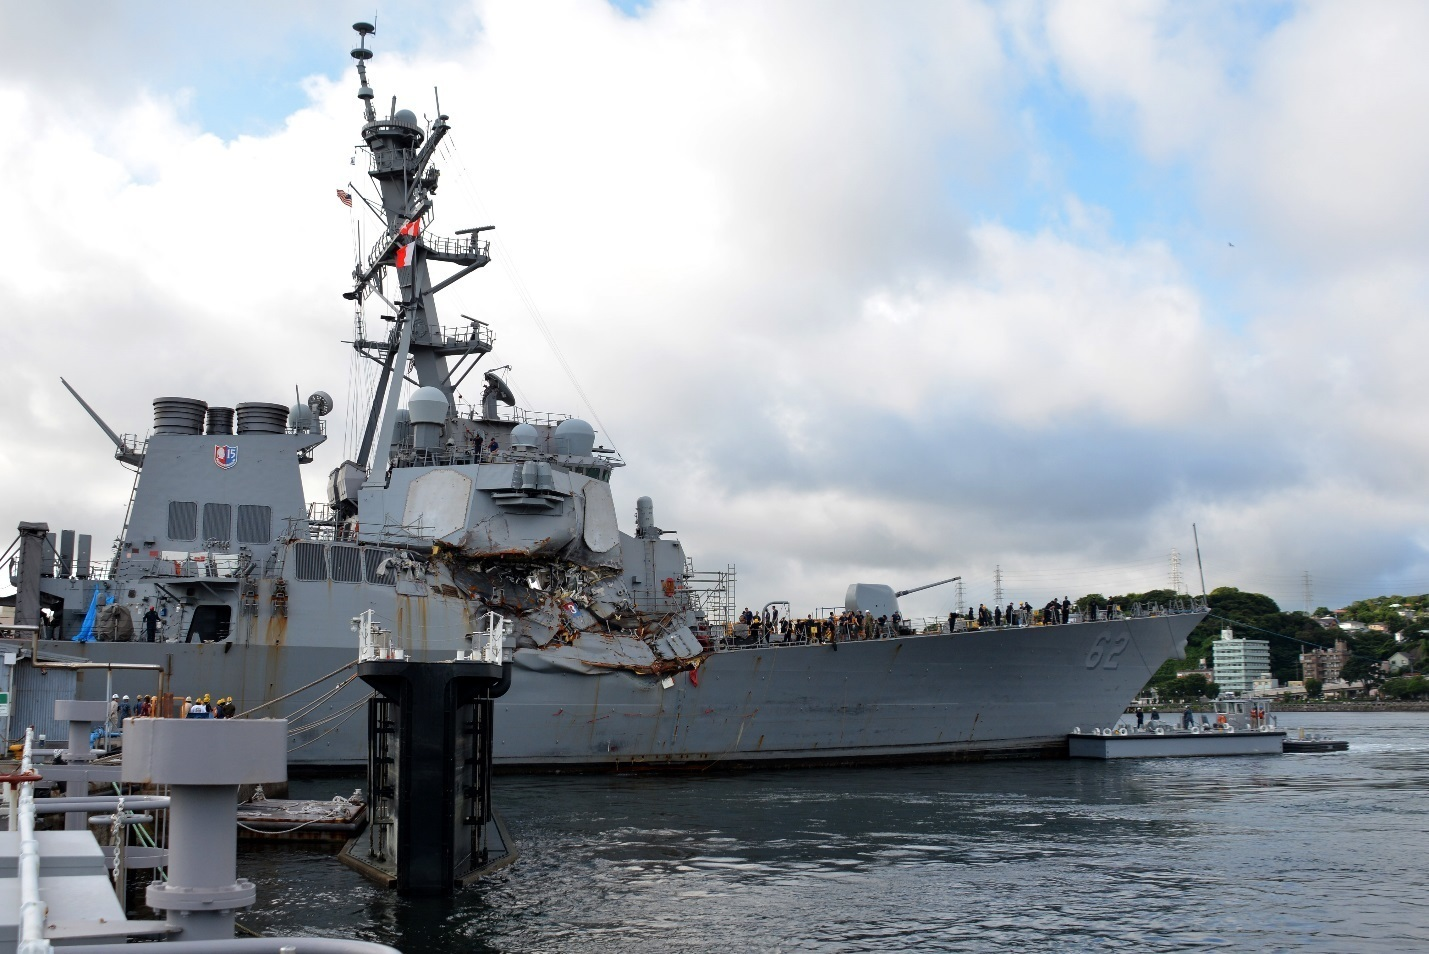 201f36ffabe8a Summary of Major Events Since Fatal USS Fitzgerald Collision - USNI News